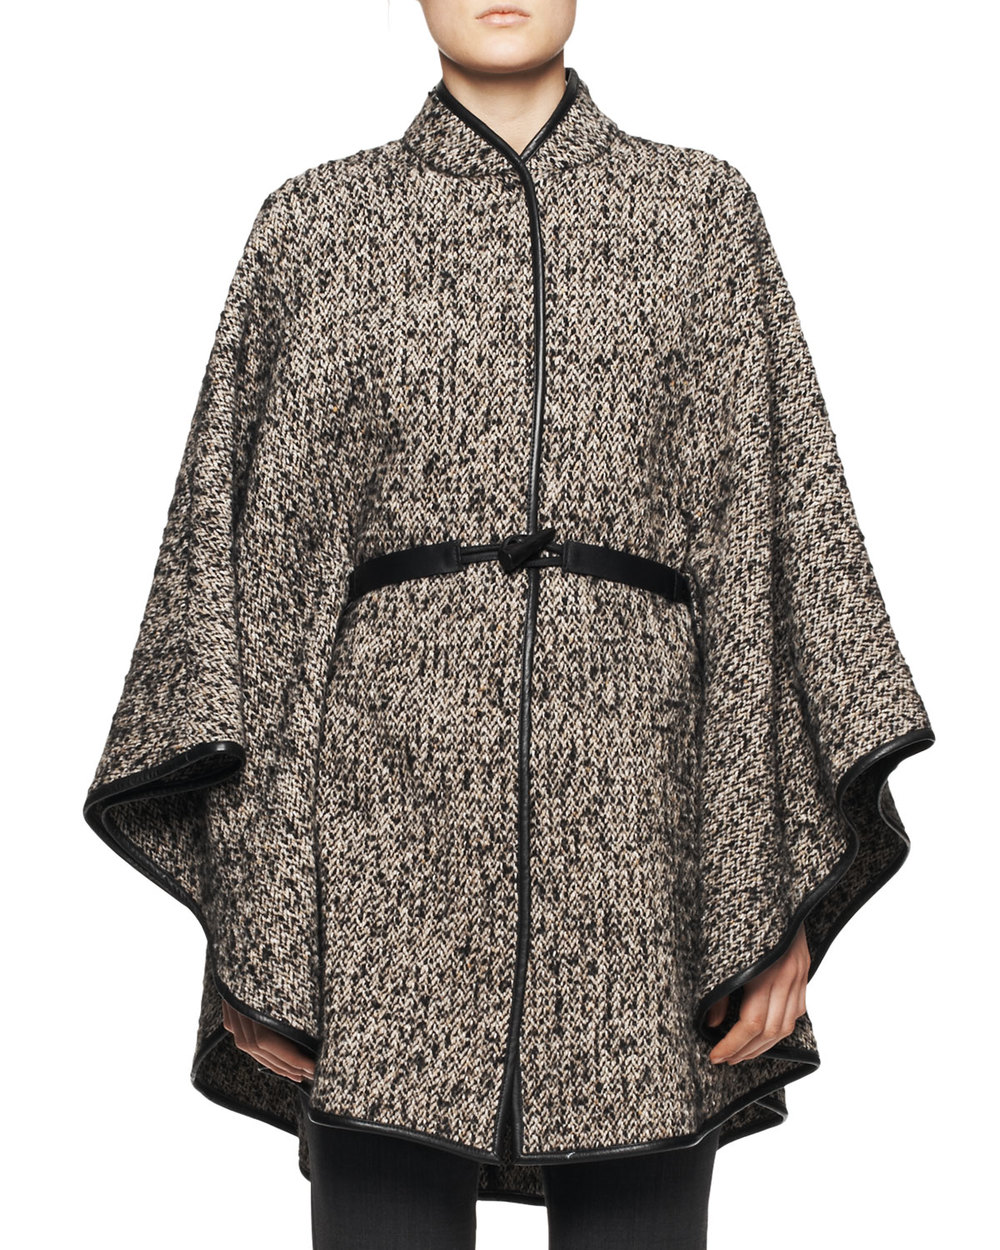 ETRO LEATHER BELT TWEED PONCHO was $2420 now $1420.40